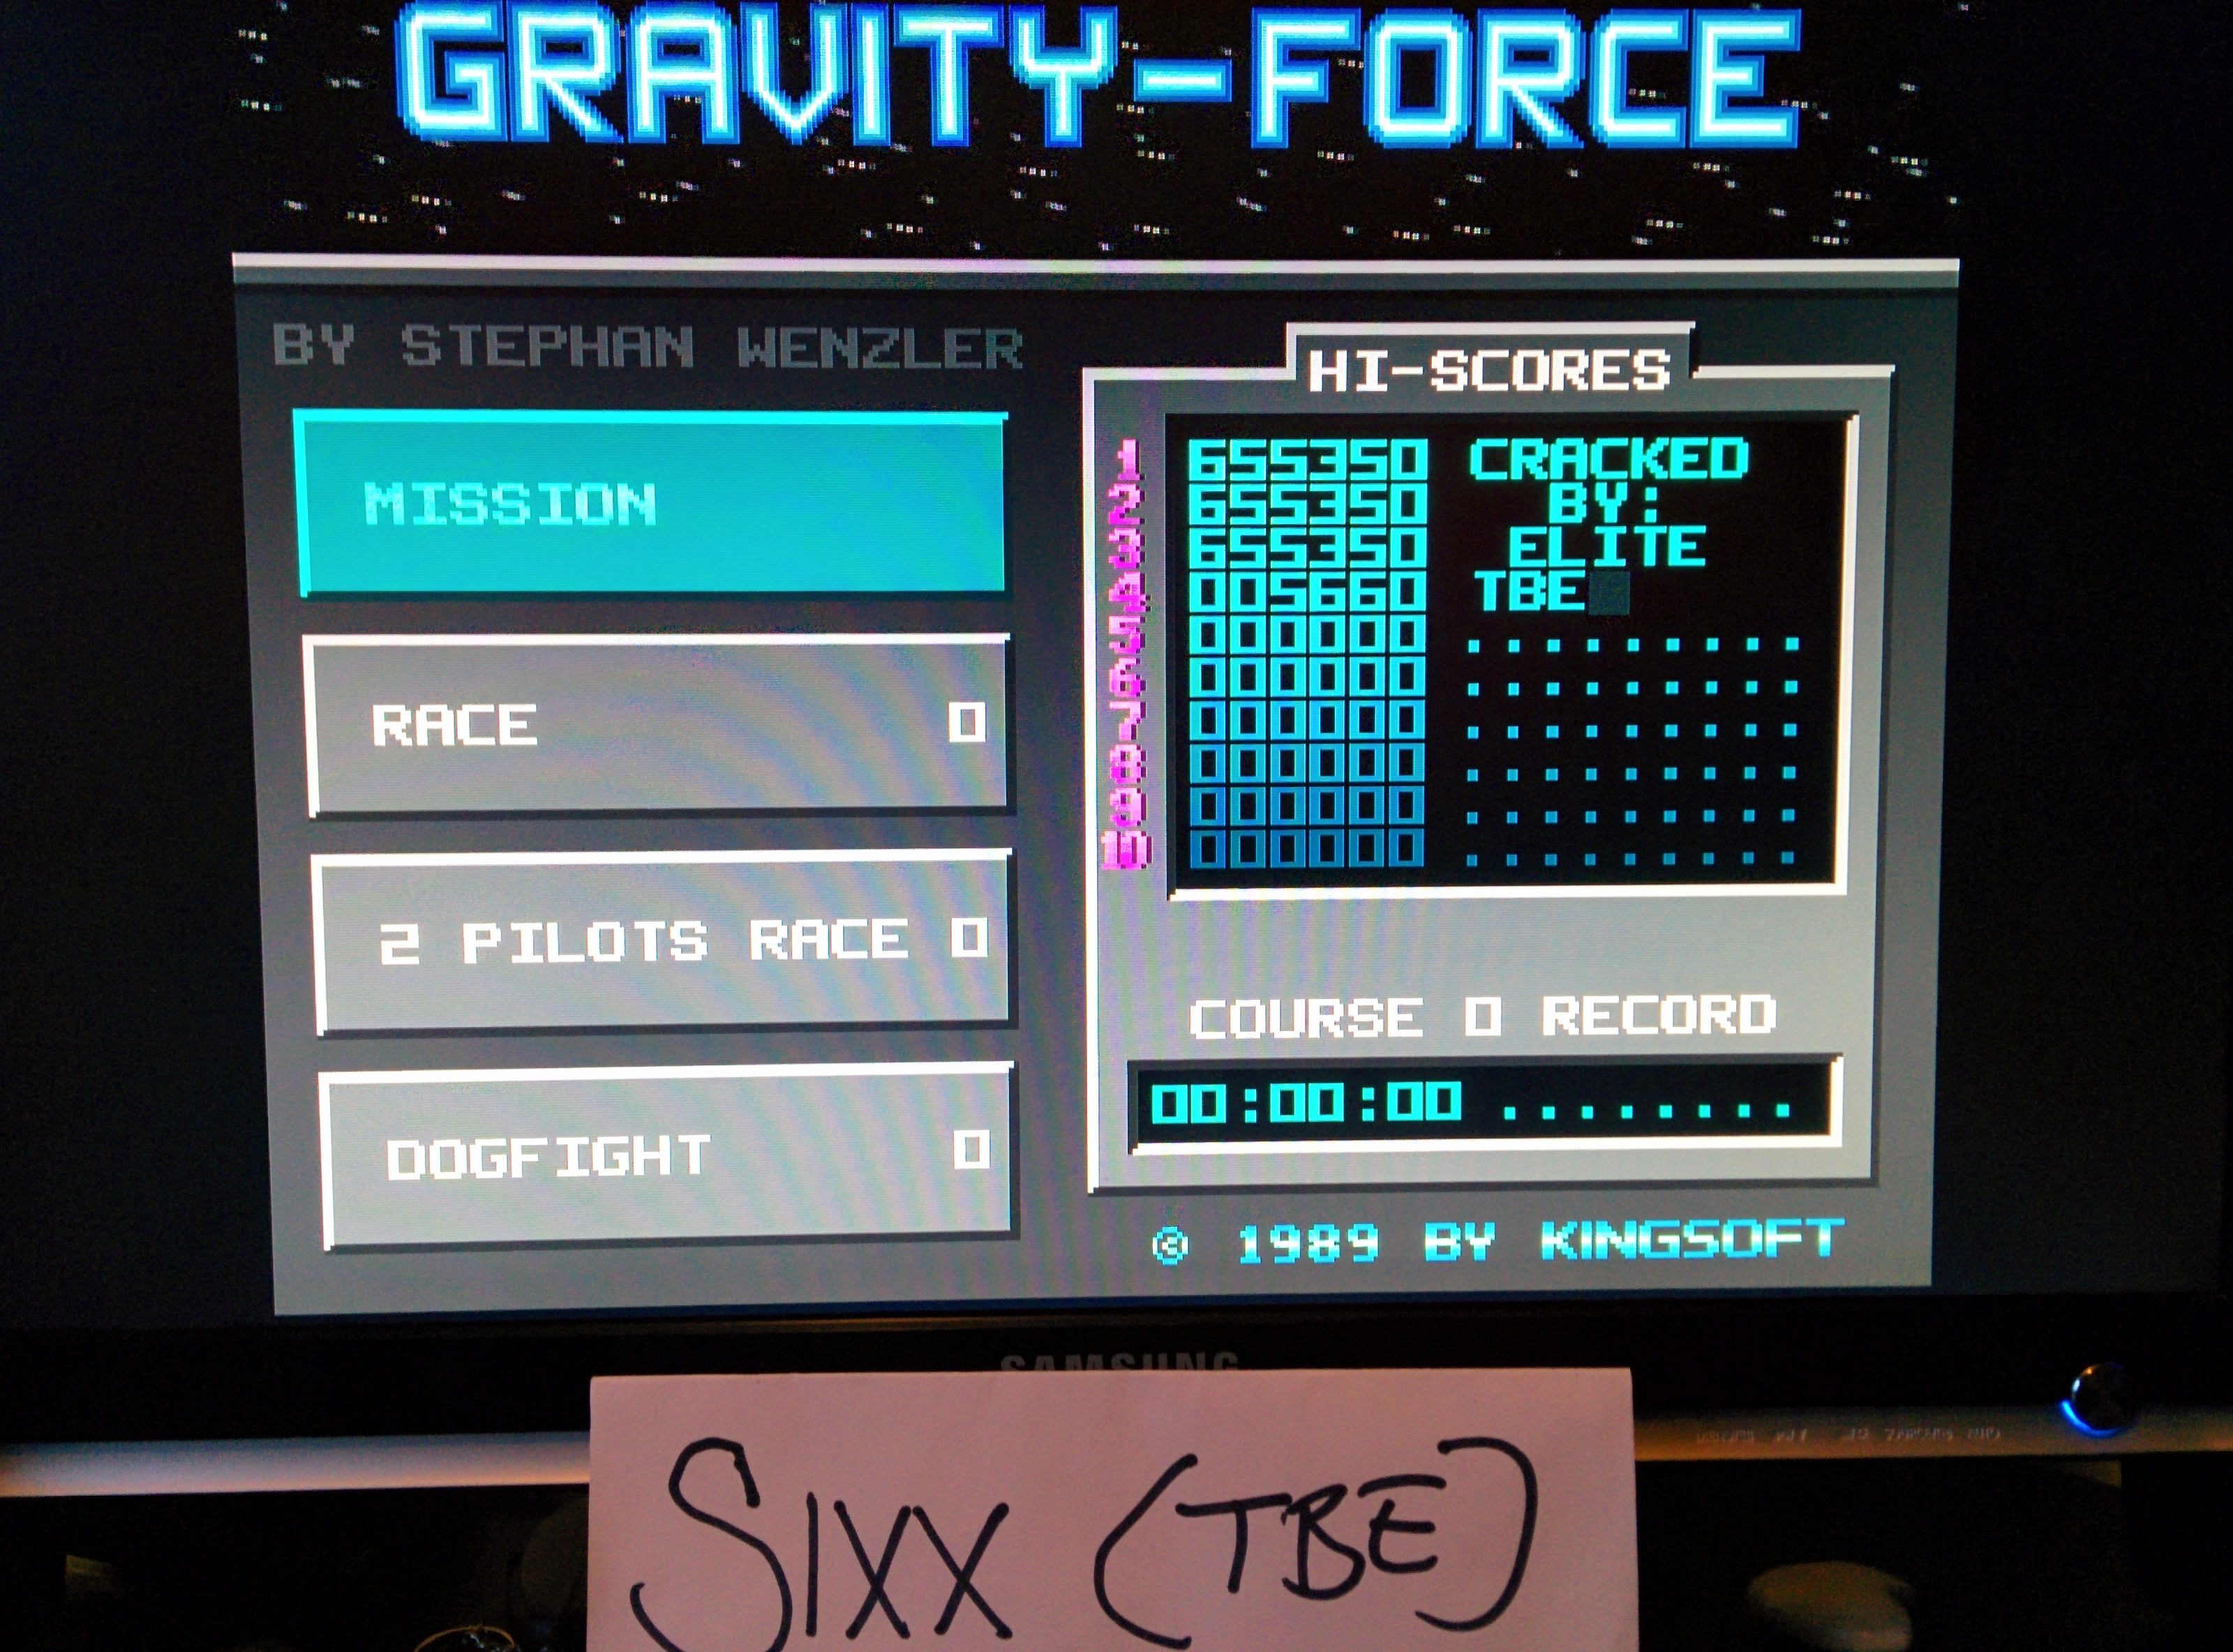 Sixx: Gravity Force [Mission] (Amiga Emulated) 5,660 points on 2014-05-08 14:28:01